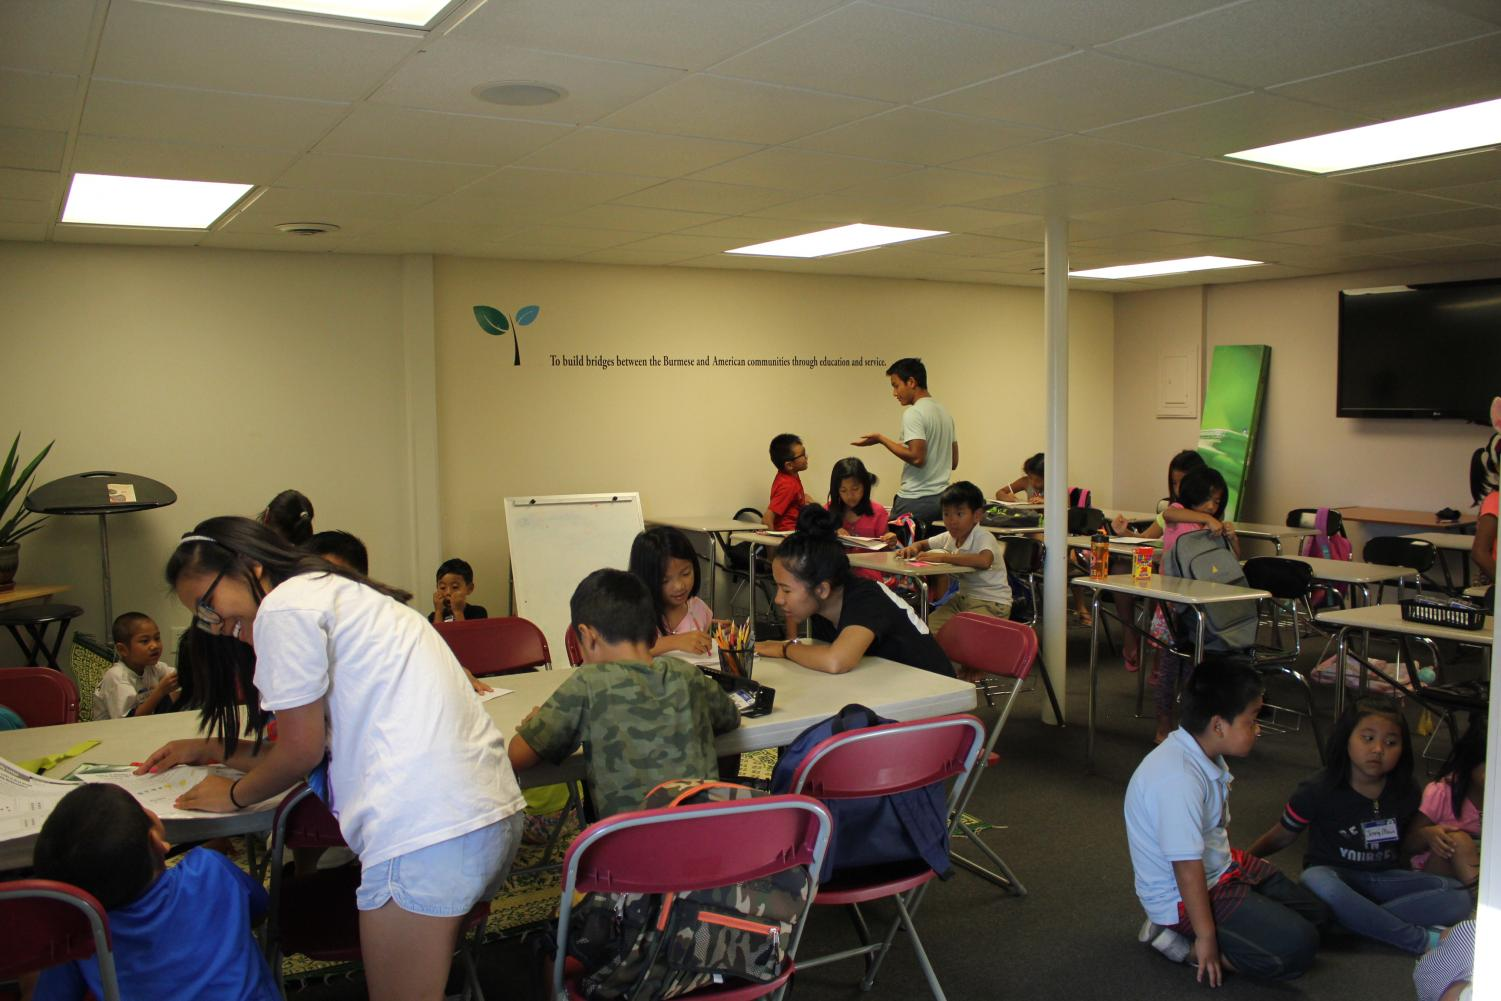 NEW FACILITY: Over 30 students ranging from kindergarten to 8th grade receive homework help. The new Hope for Tomorrow facility holds over 80 students, almost double the amount of the old facility.